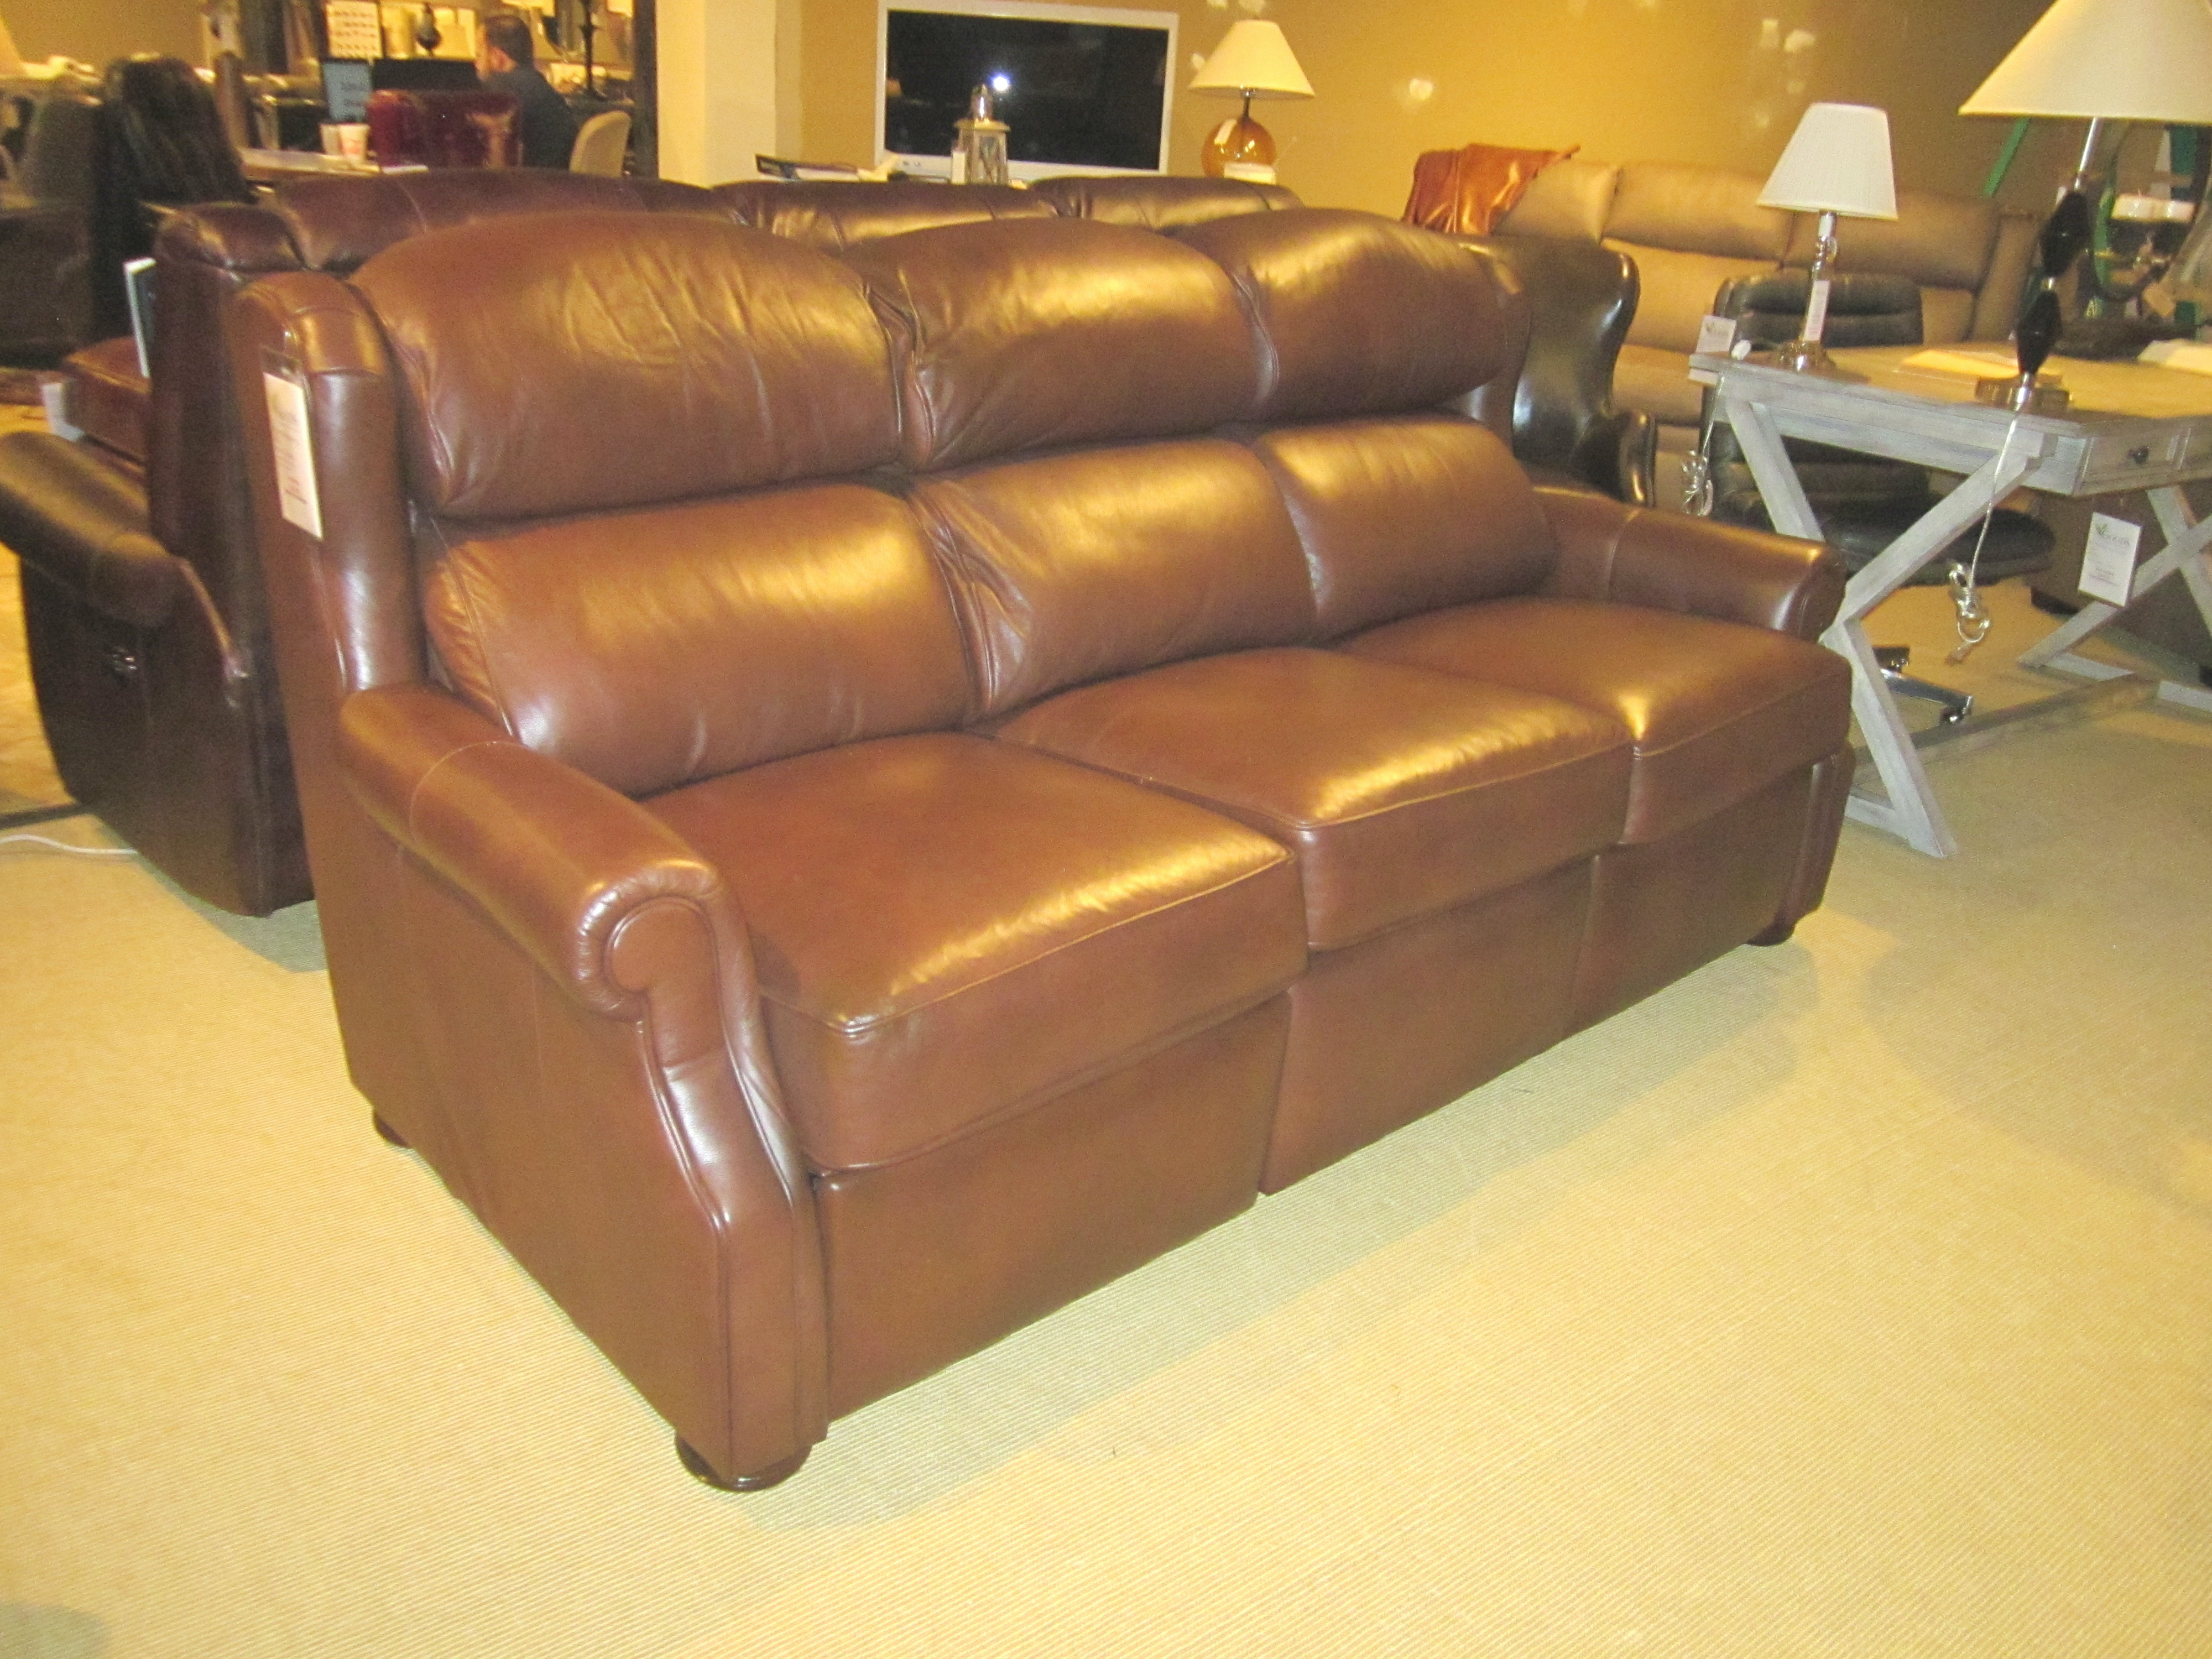 Bradington Young Furniture Armando Reclining Leather Sofa 930 90 Clearance